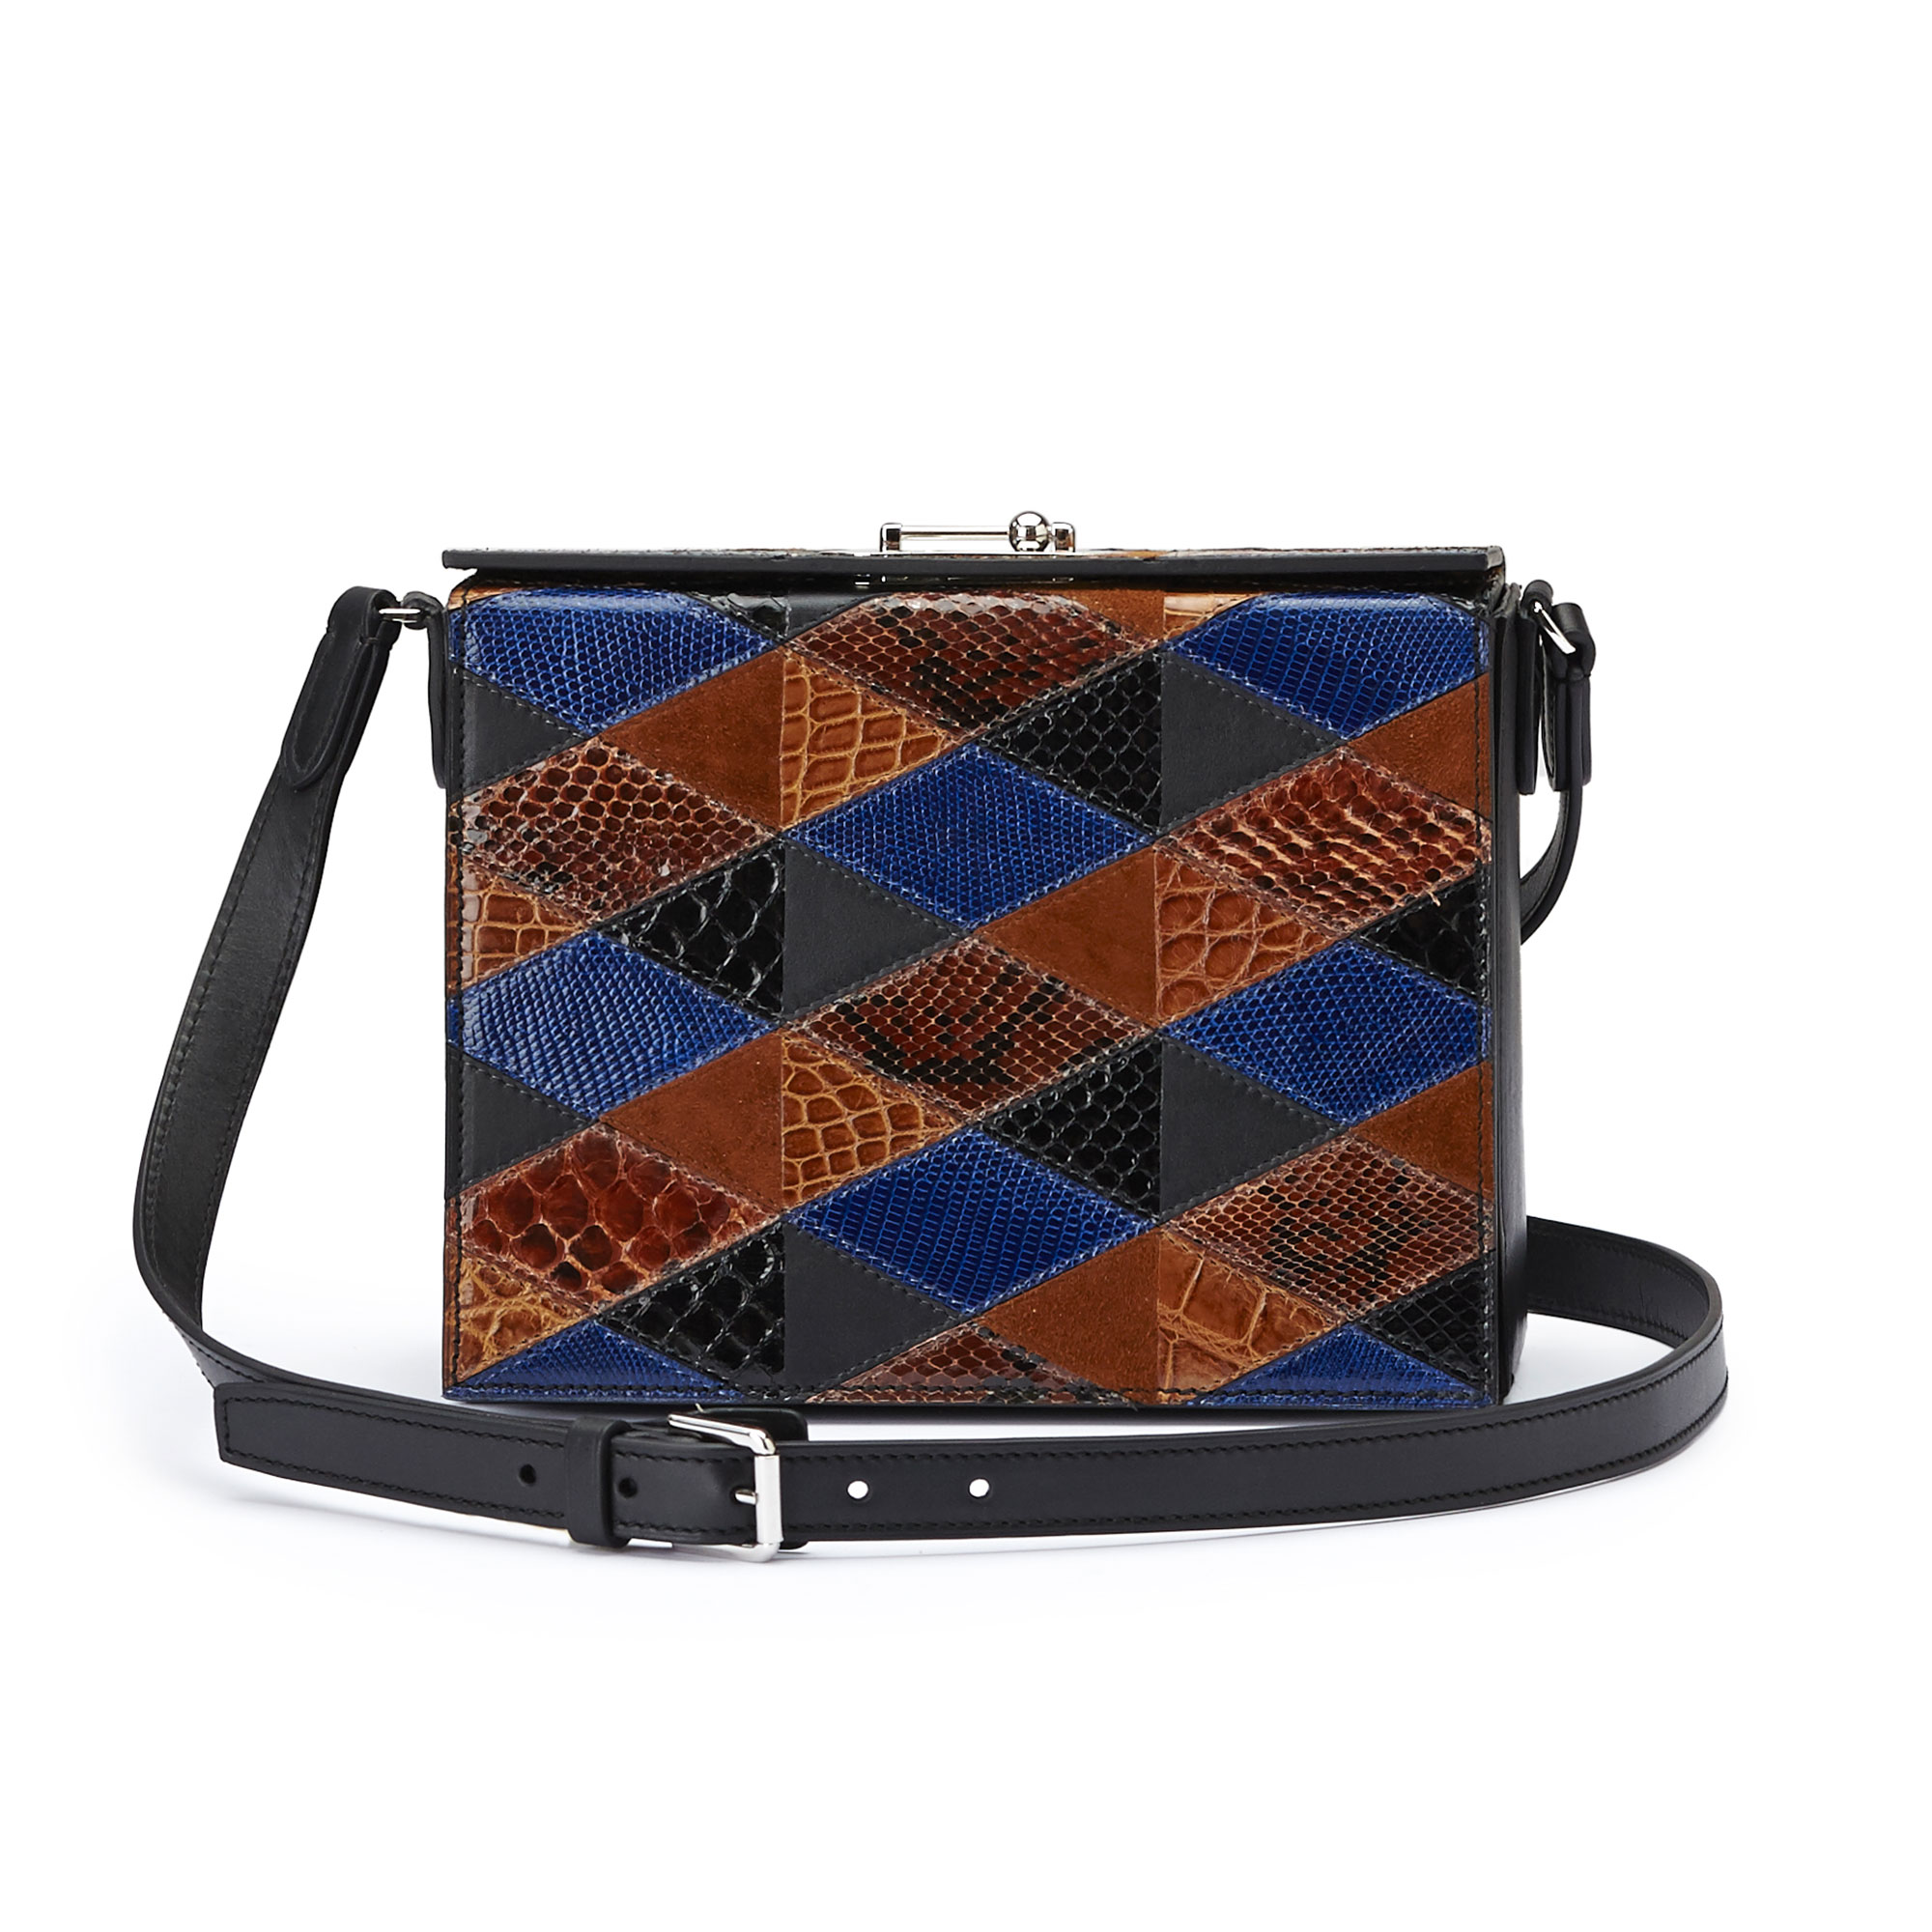 The navy, black and brown alligator, french calf, lizard, python Gemma Crossbody bag by Bertoni 1949 01